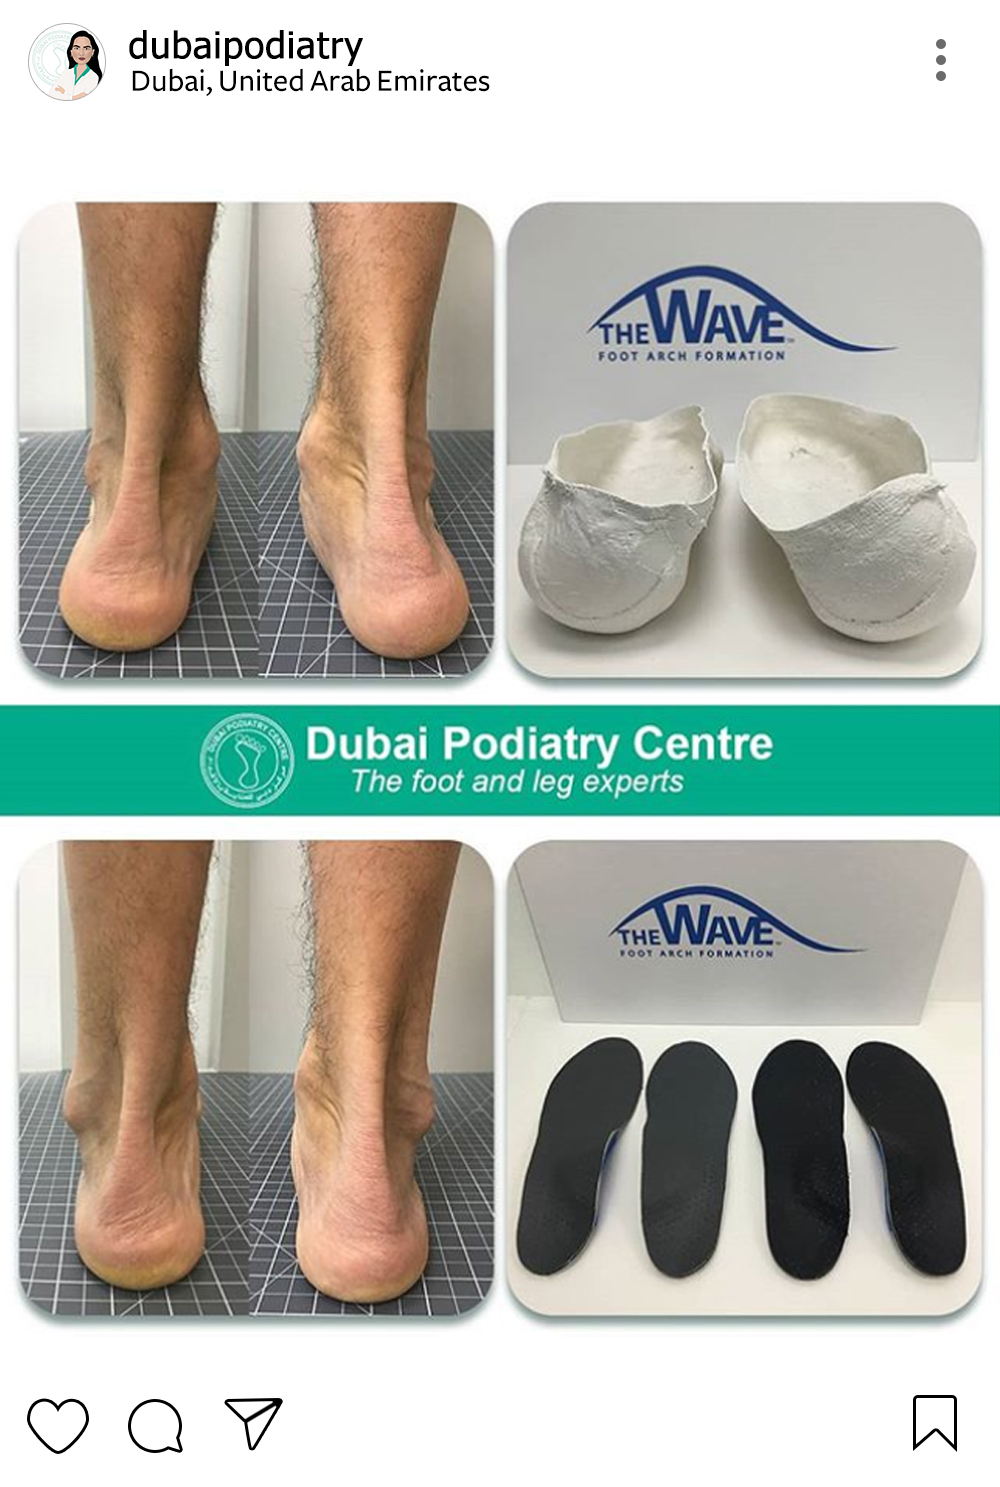 http://dubaipodiatry.com/wp-content/uploads/2019/01/Dubai-Podiatry-Instagram-1a.jpg